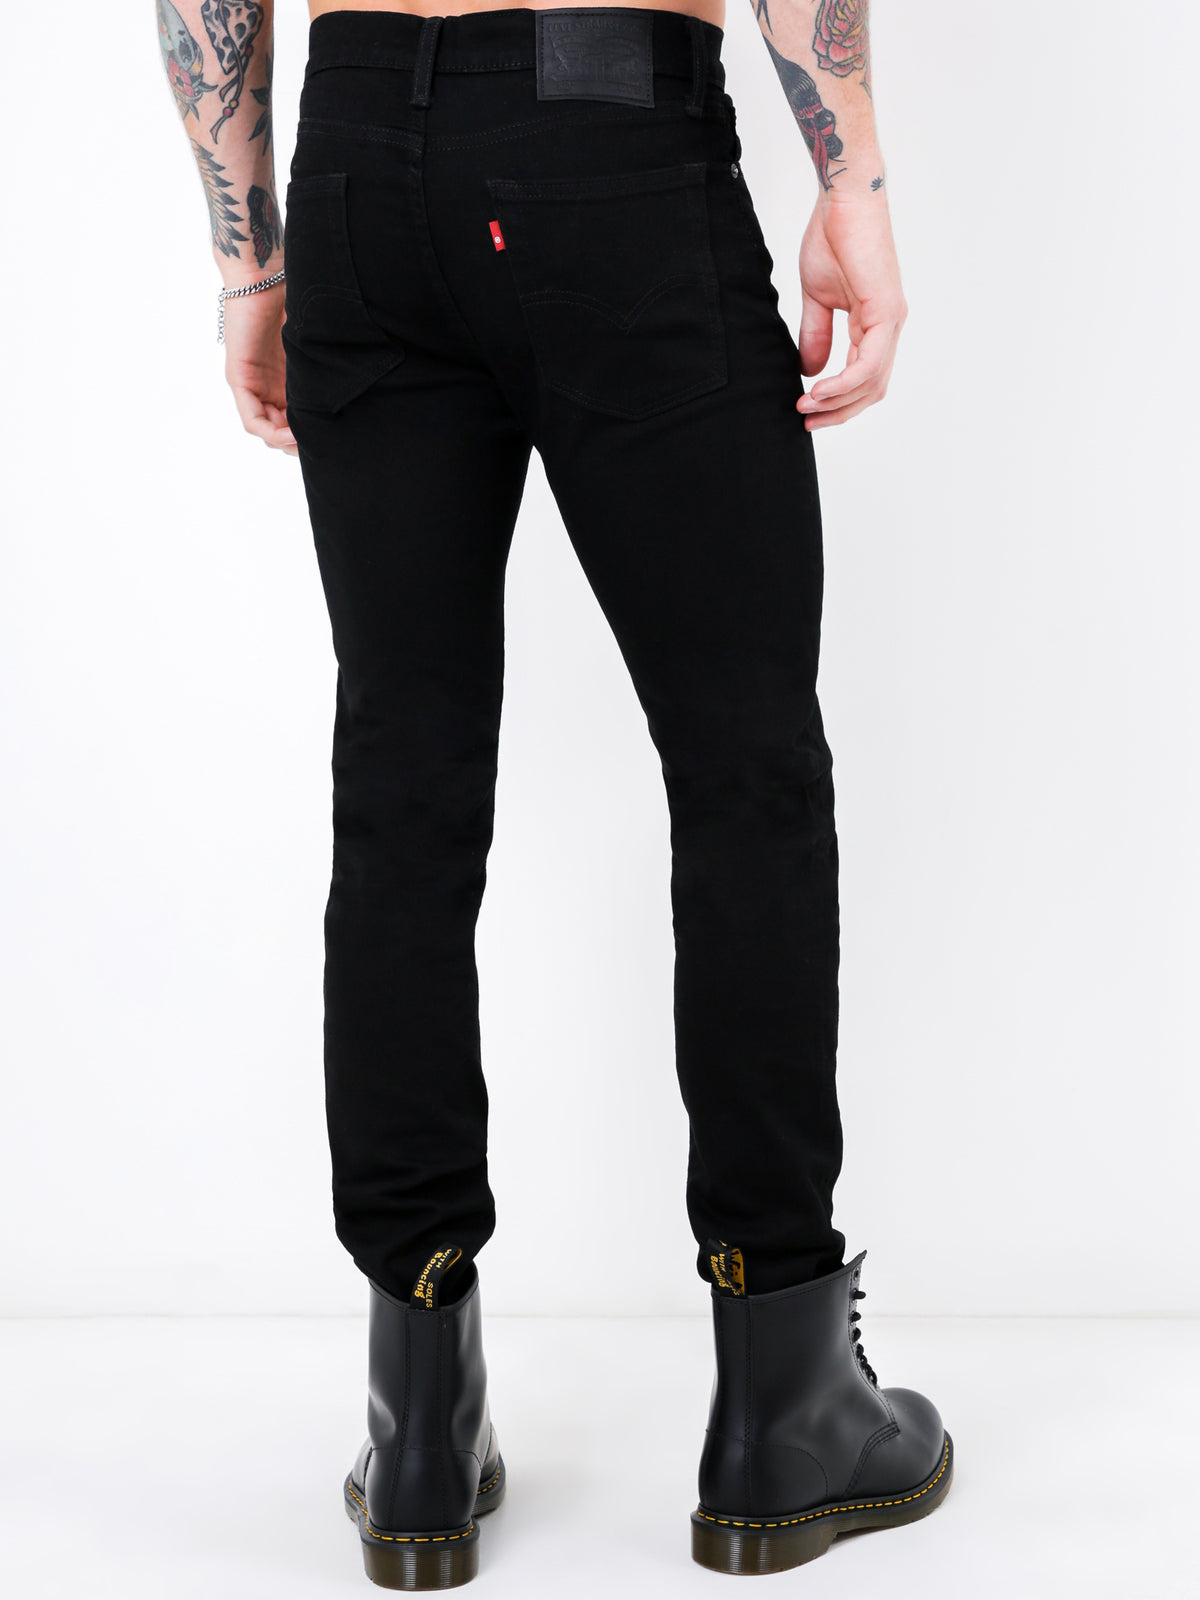 510 Skinny Fit Jeans in Nightshine Black Denim